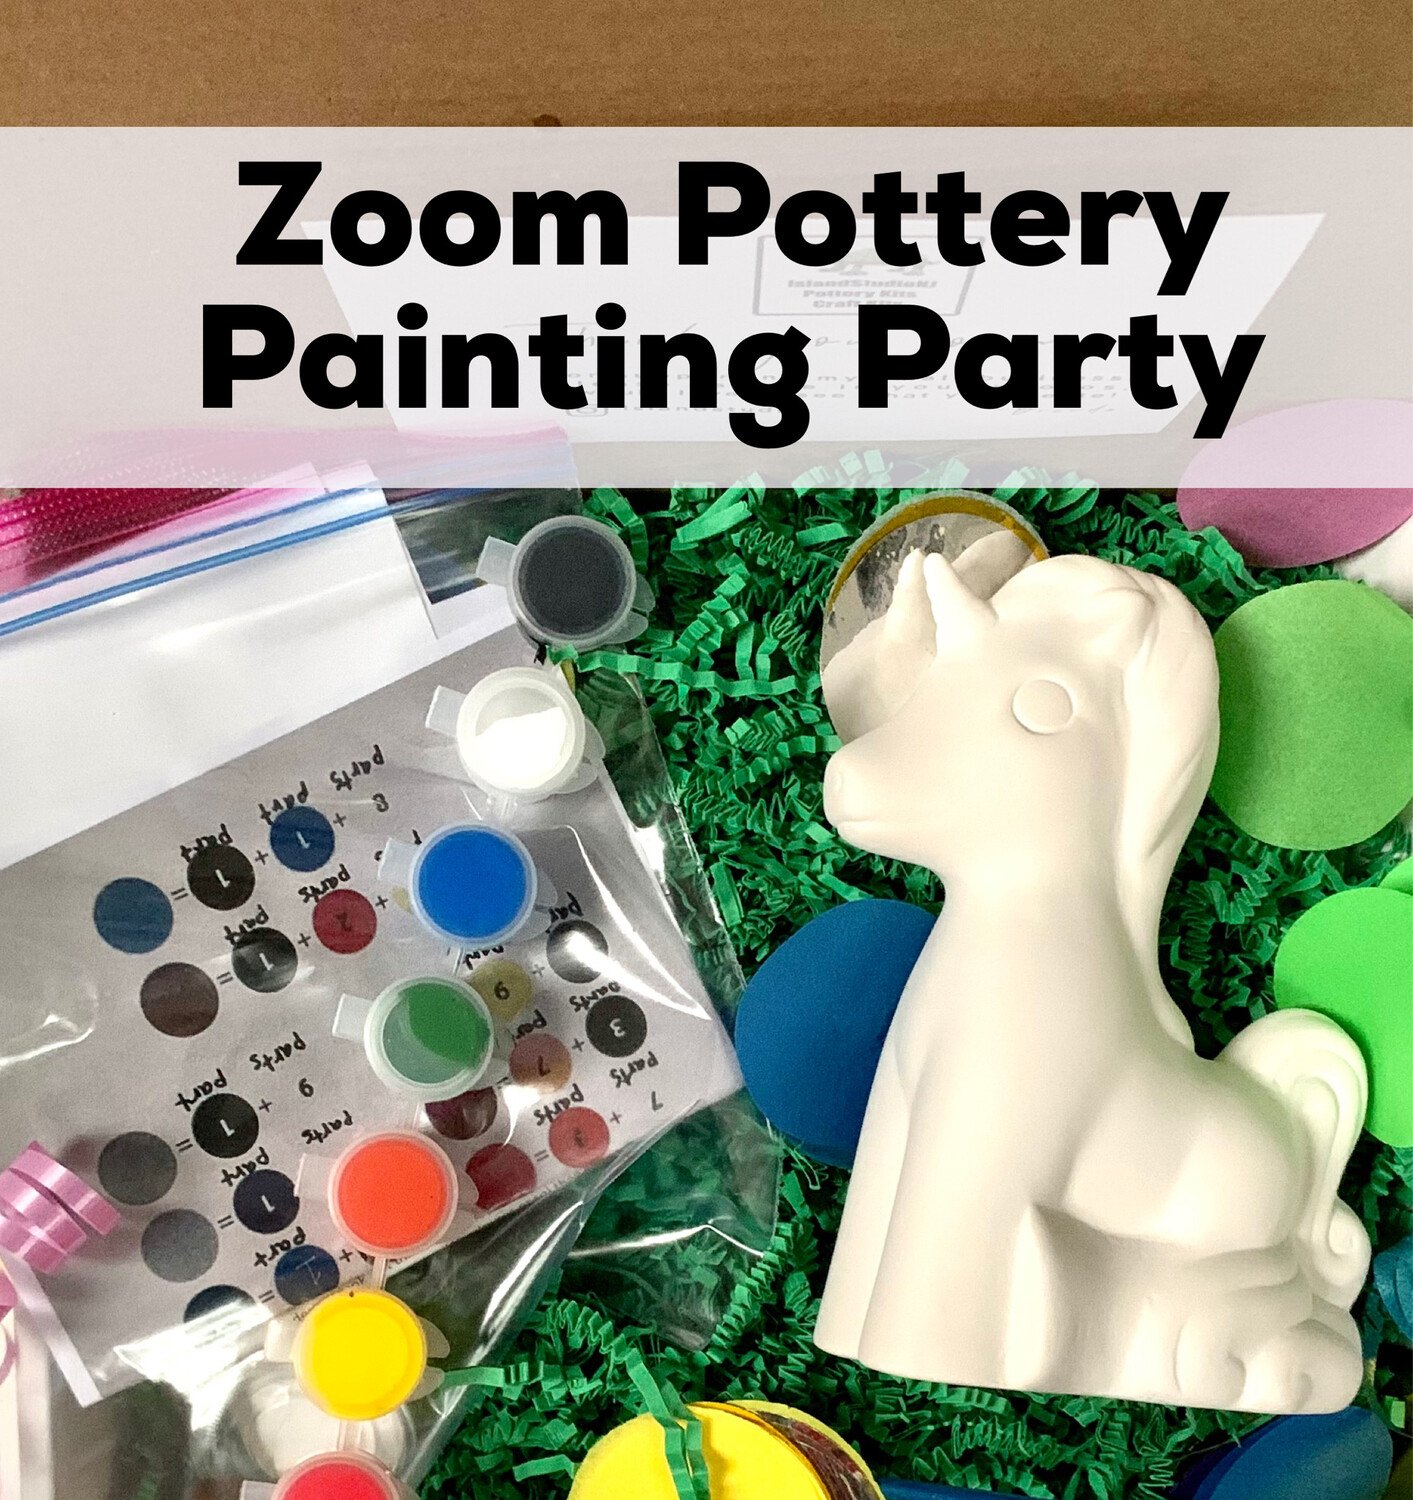 Zoom Pottery Painting Party June 29, 2021 from 3-4:30pm - Free With Pottery Purchase